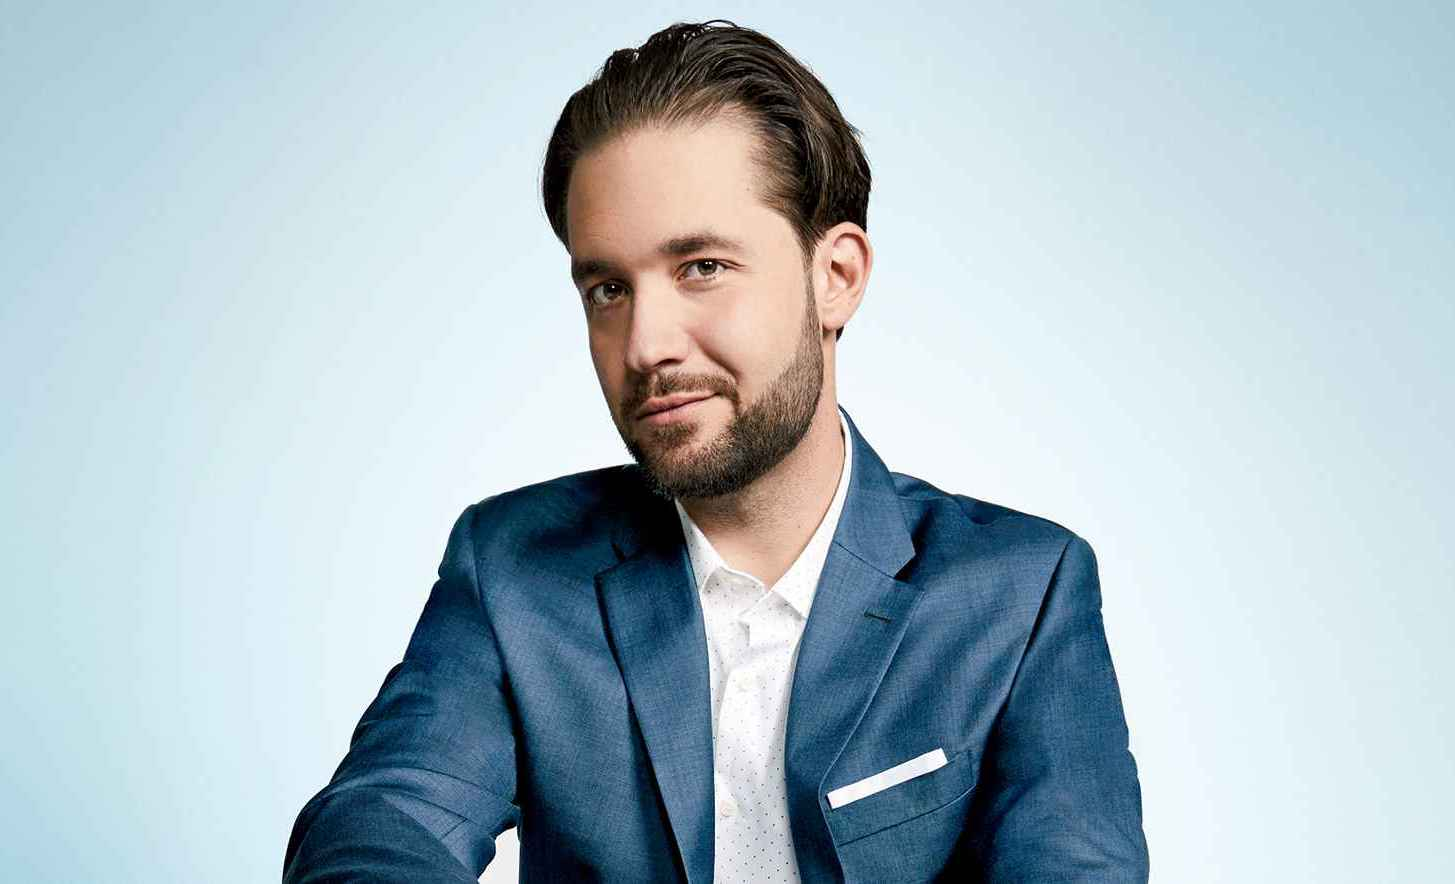 Alexis Ohanian Career